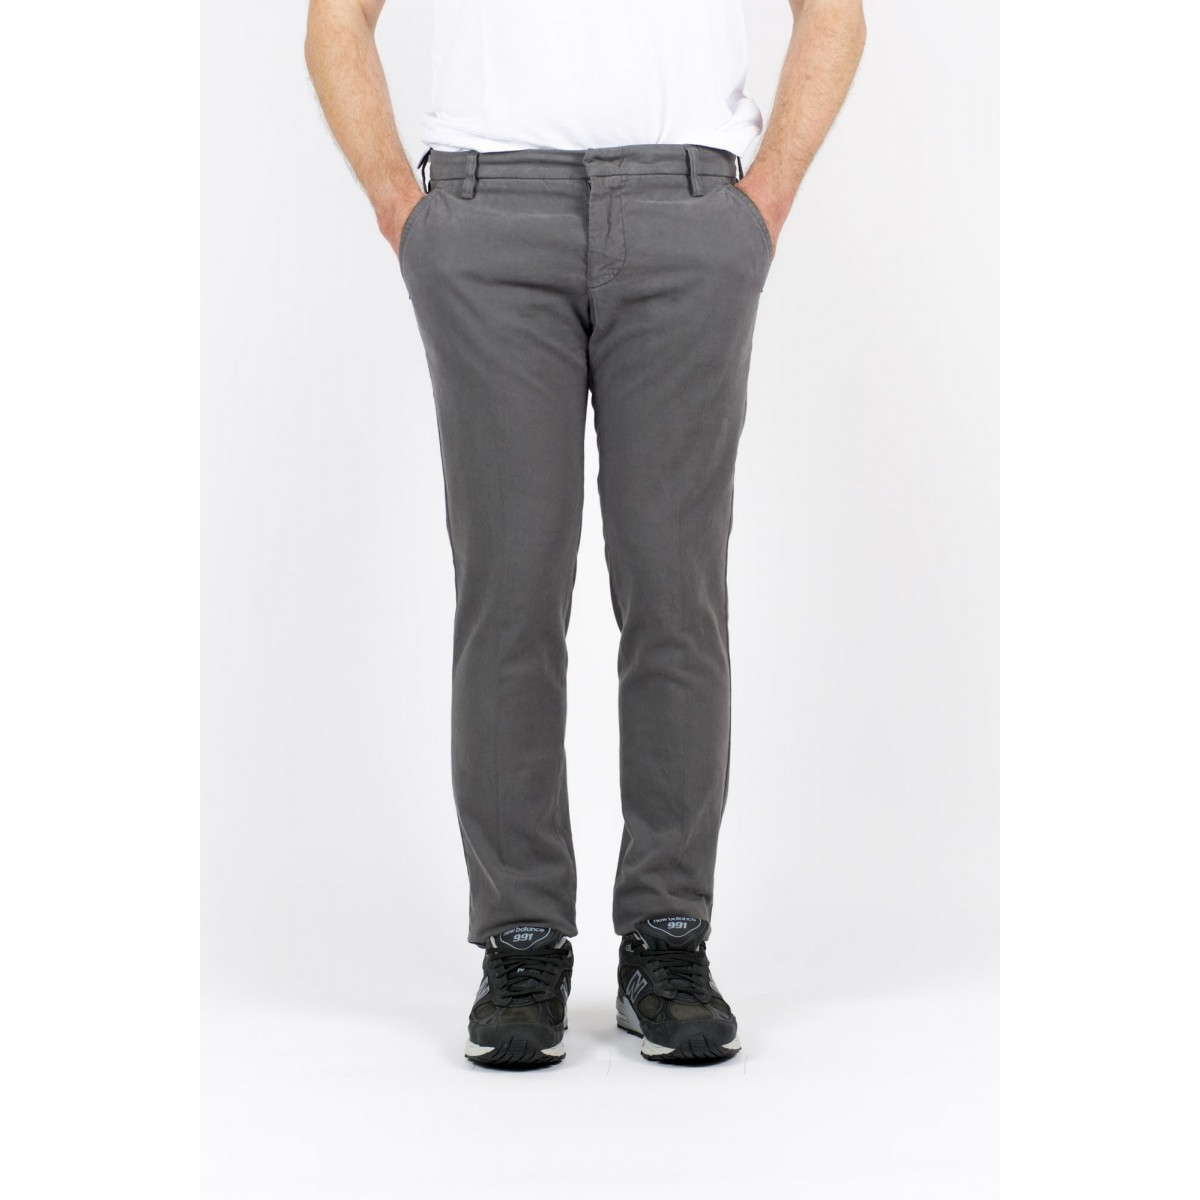 Trousers Entre Amis Man - A15 8201 302 - Grigio